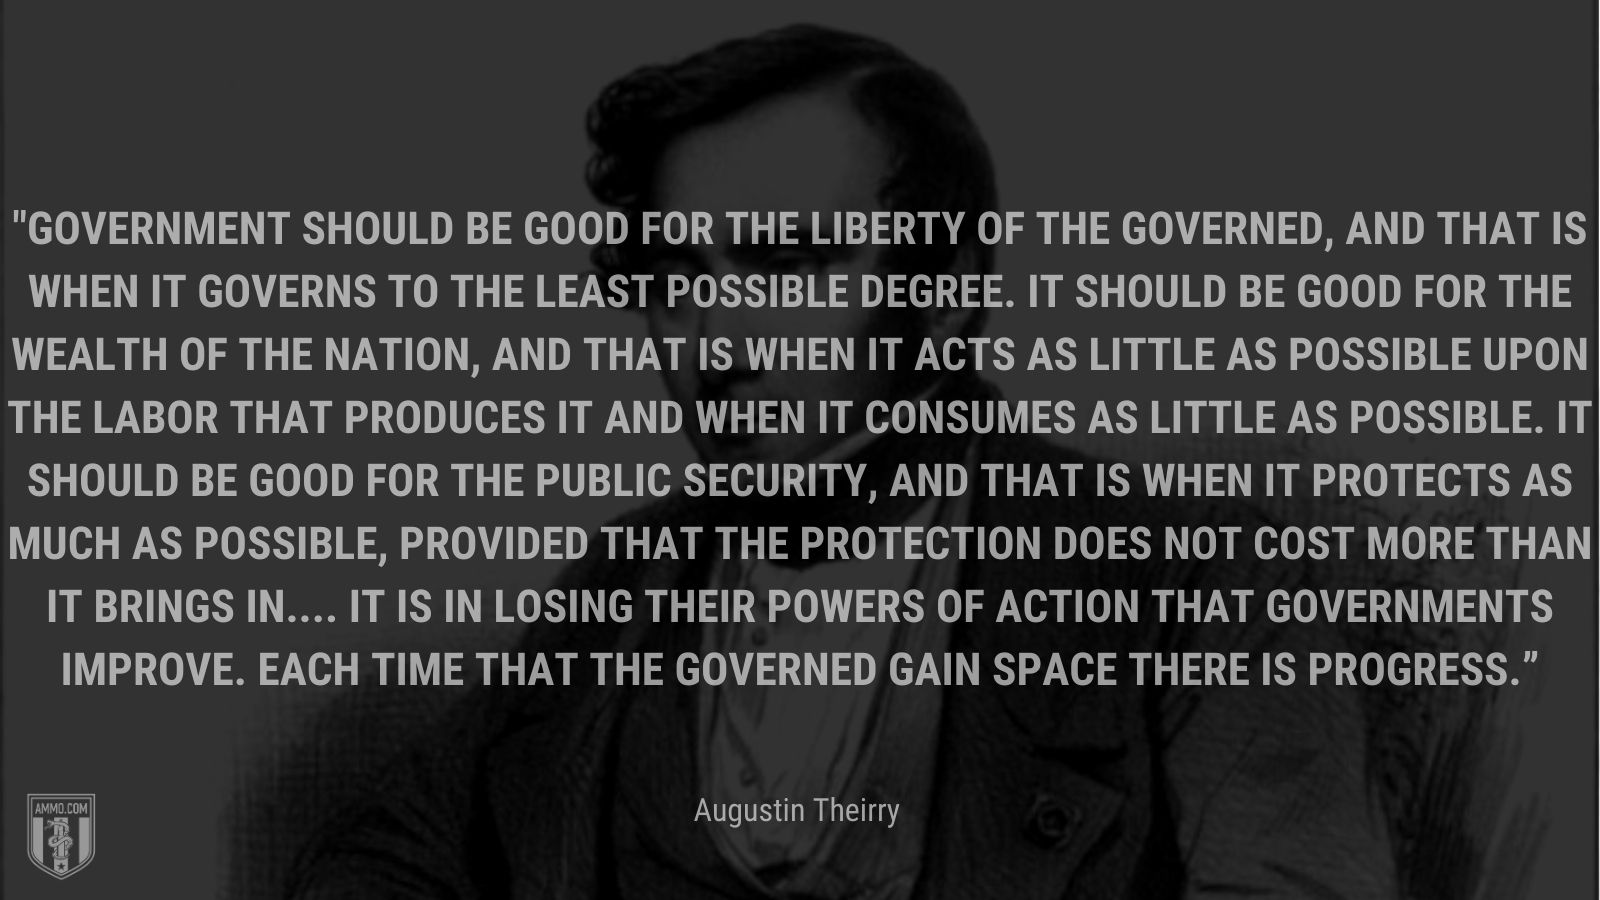 """""""Government should be good for the liberty of the governed, and that is when it governs to the least possible degree. It should be good for the wealth of the nation, and that is when it acts as little as possible upon the labor that produces it and when it consumes as little as possible. It should be good for the public security, and that is when it protects as much as possible, provided that the protection does not cost more than it brings in.... It is in losing their powers of action that governments improve. Each time that the governed gain space there is progress."""" - Augustin Theirry"""